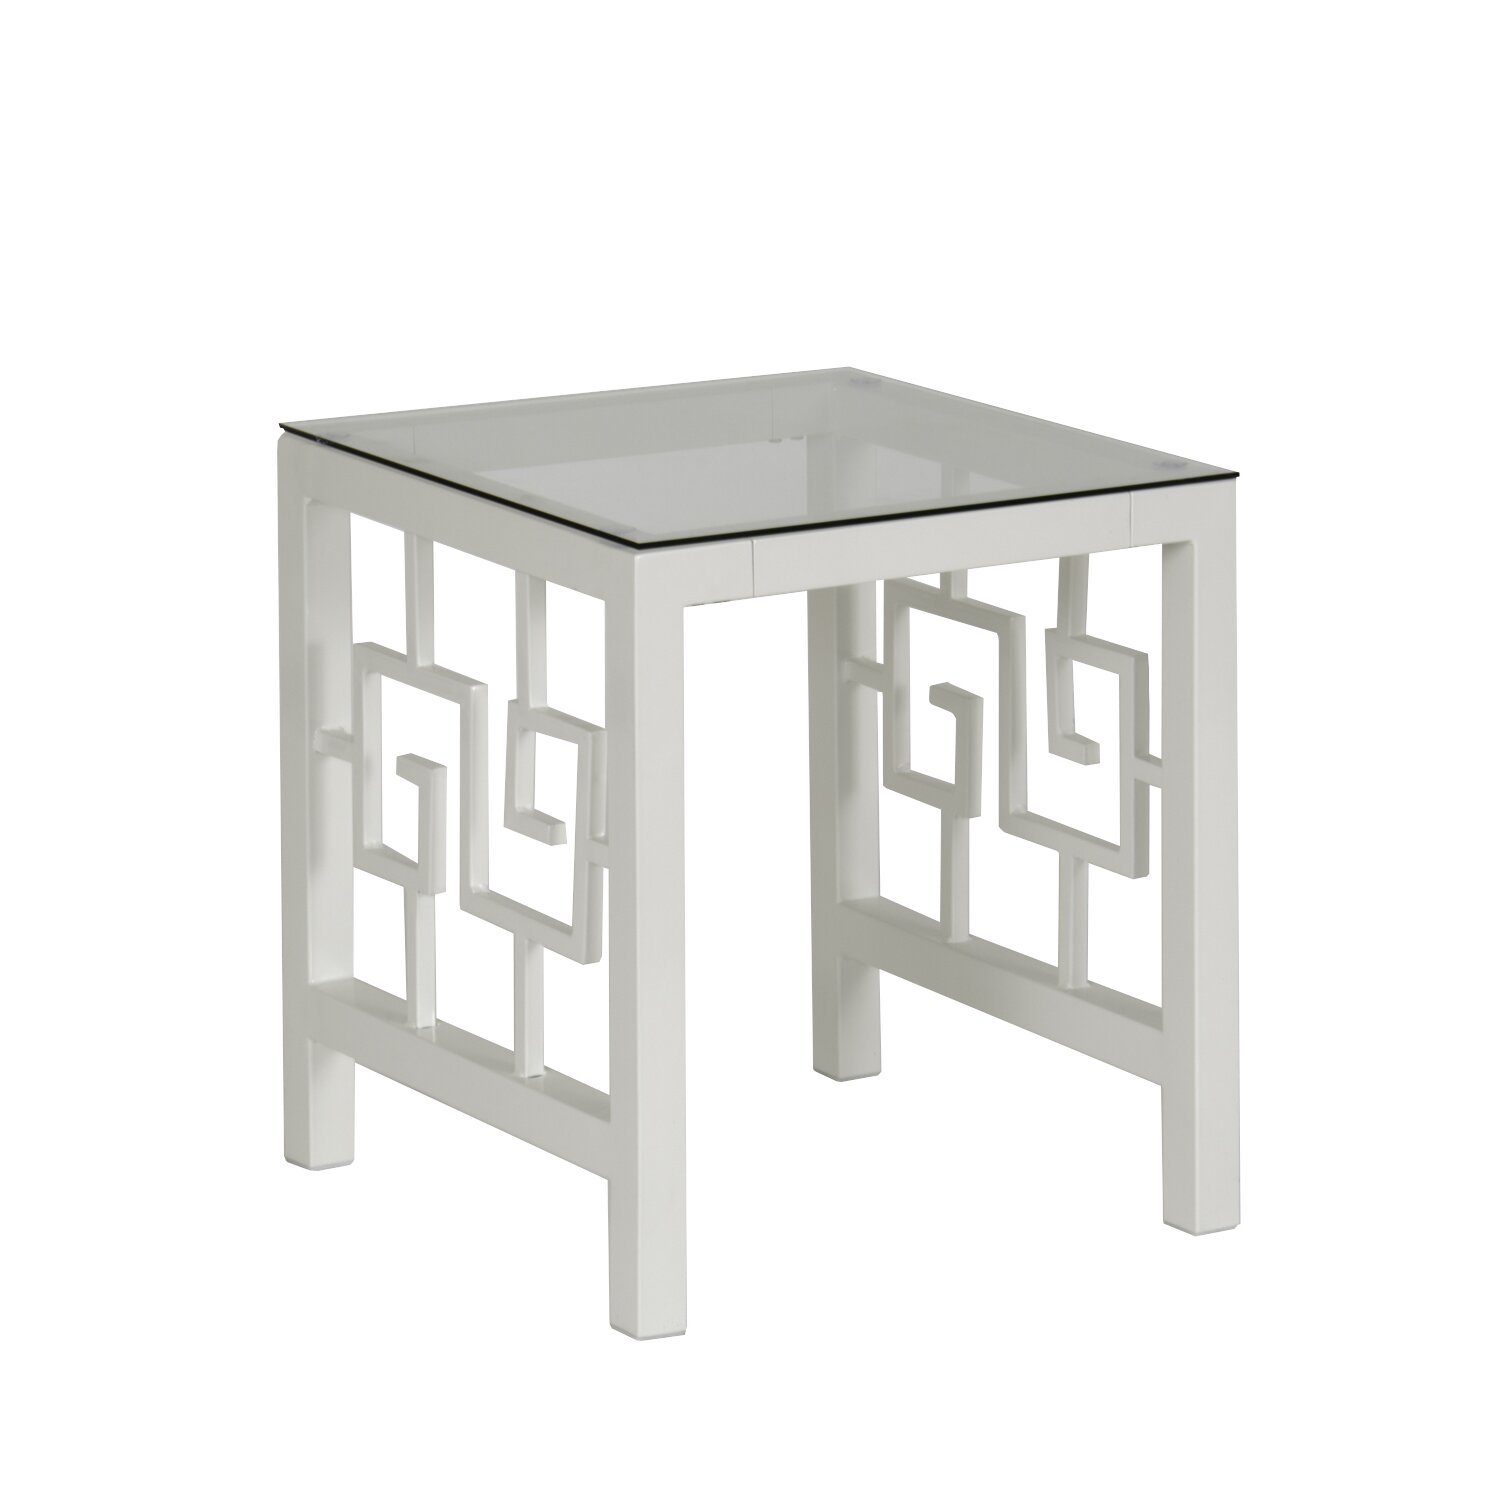 In style furnishings greek key coffee table set reviews for Html table style